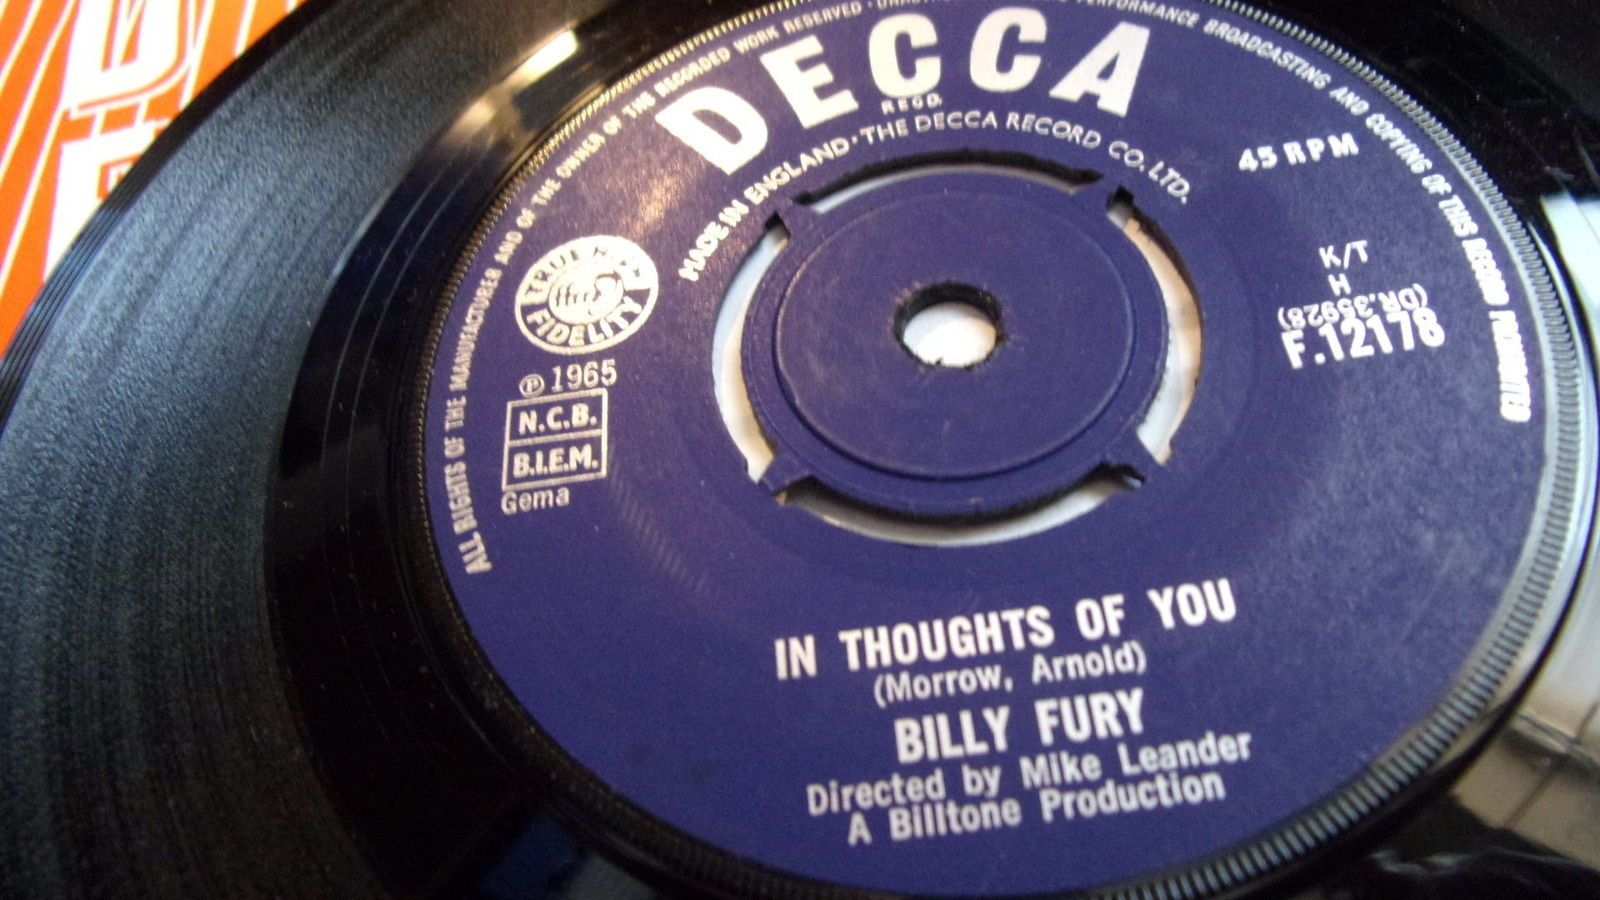 Billy Fury - In thoughts of You on Ebay Oct 2016